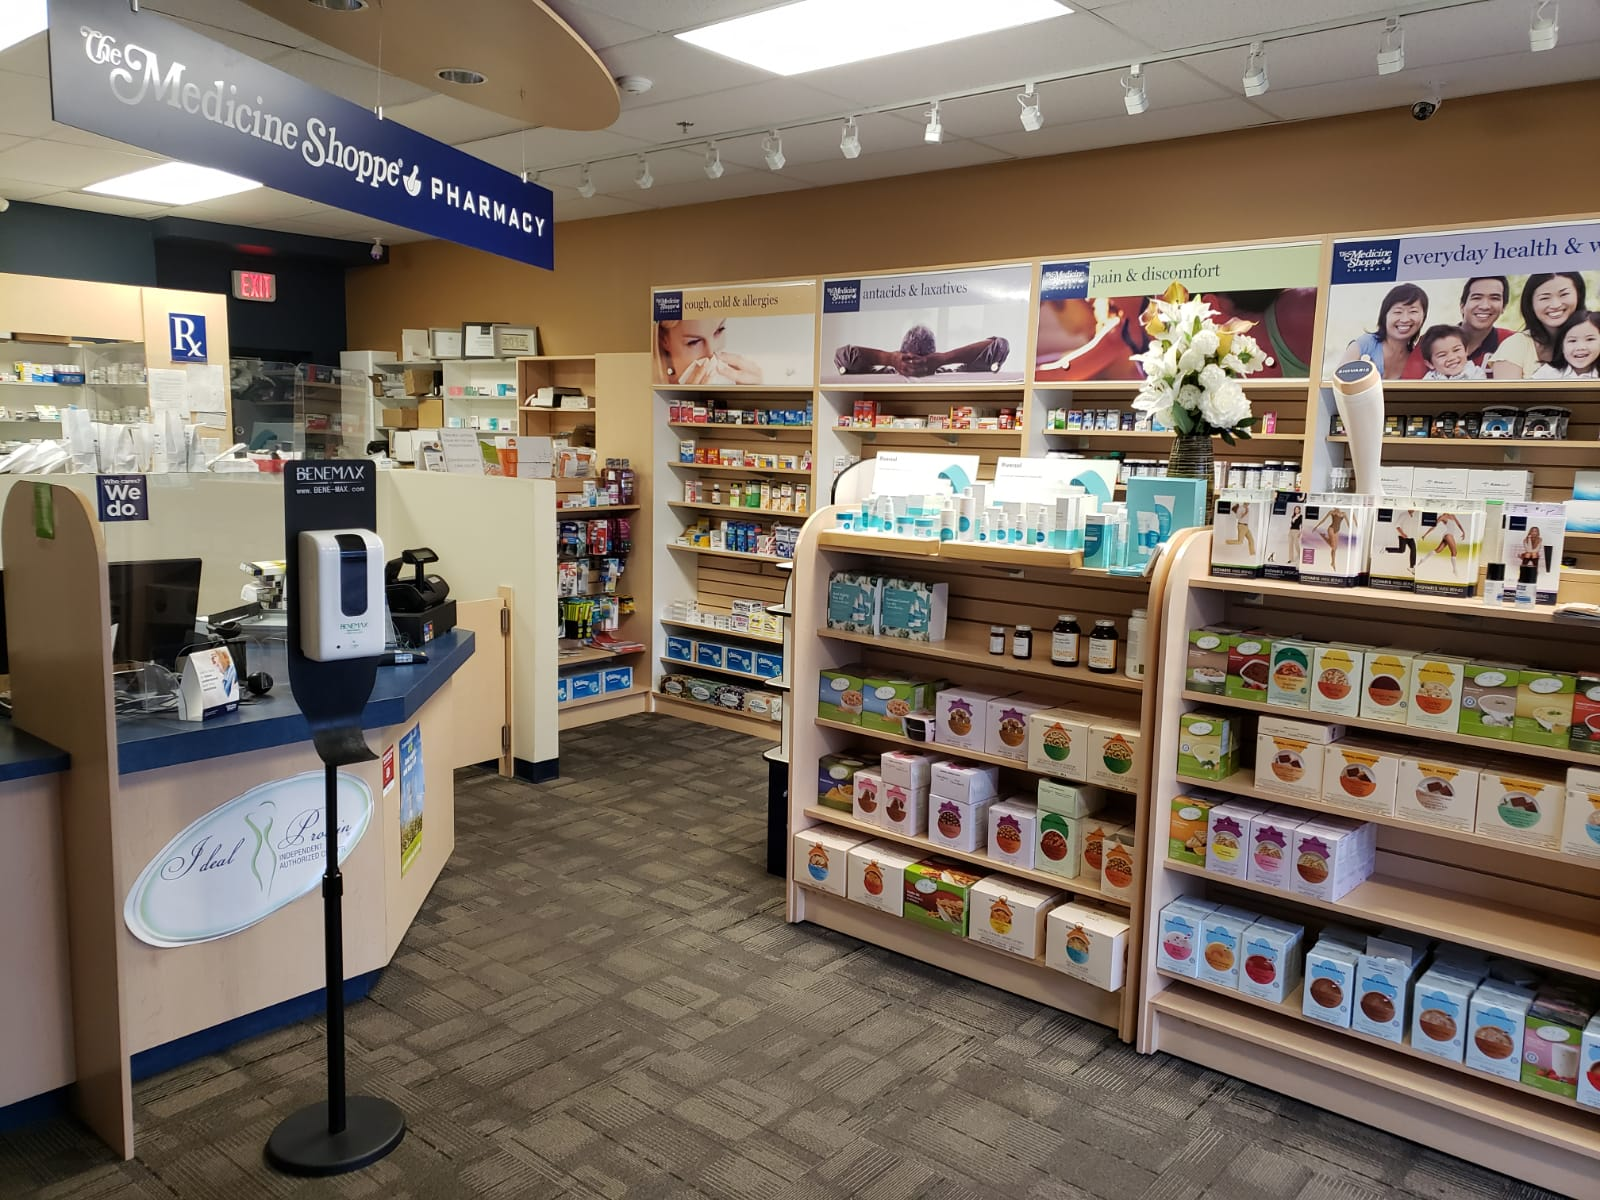 Medicine Shoppe Pharmacy, Lakeshore road, Kelowna is a patient focused compounding pharmacy. We offer quick prescription service in addition to compounding medications, blister packaging, professional supplements, and medication reviews. Get in touch.